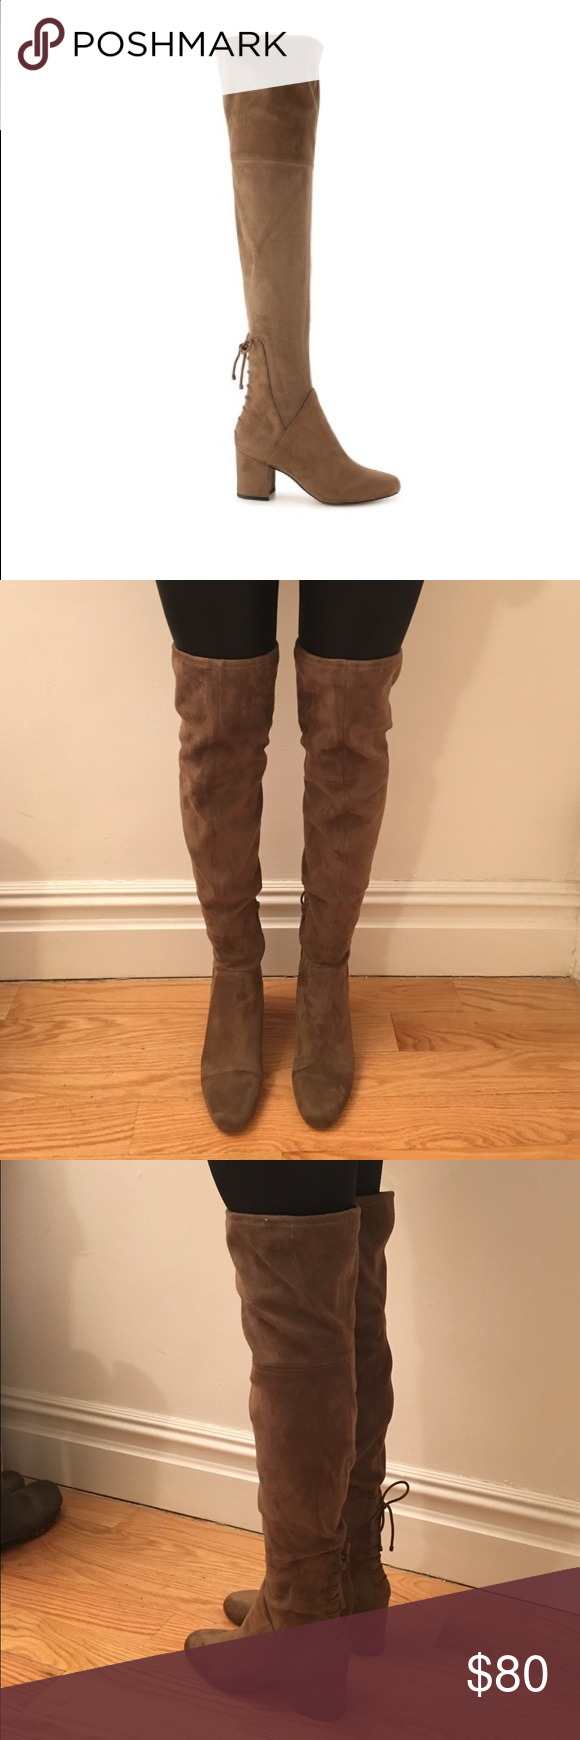 d2cdd57bc13 Aldo Adessi over the knee boots Gorgeous taupe over the knee boots.. worn  twice and in excellent condition! Selling because the top opening is too  loose on ...